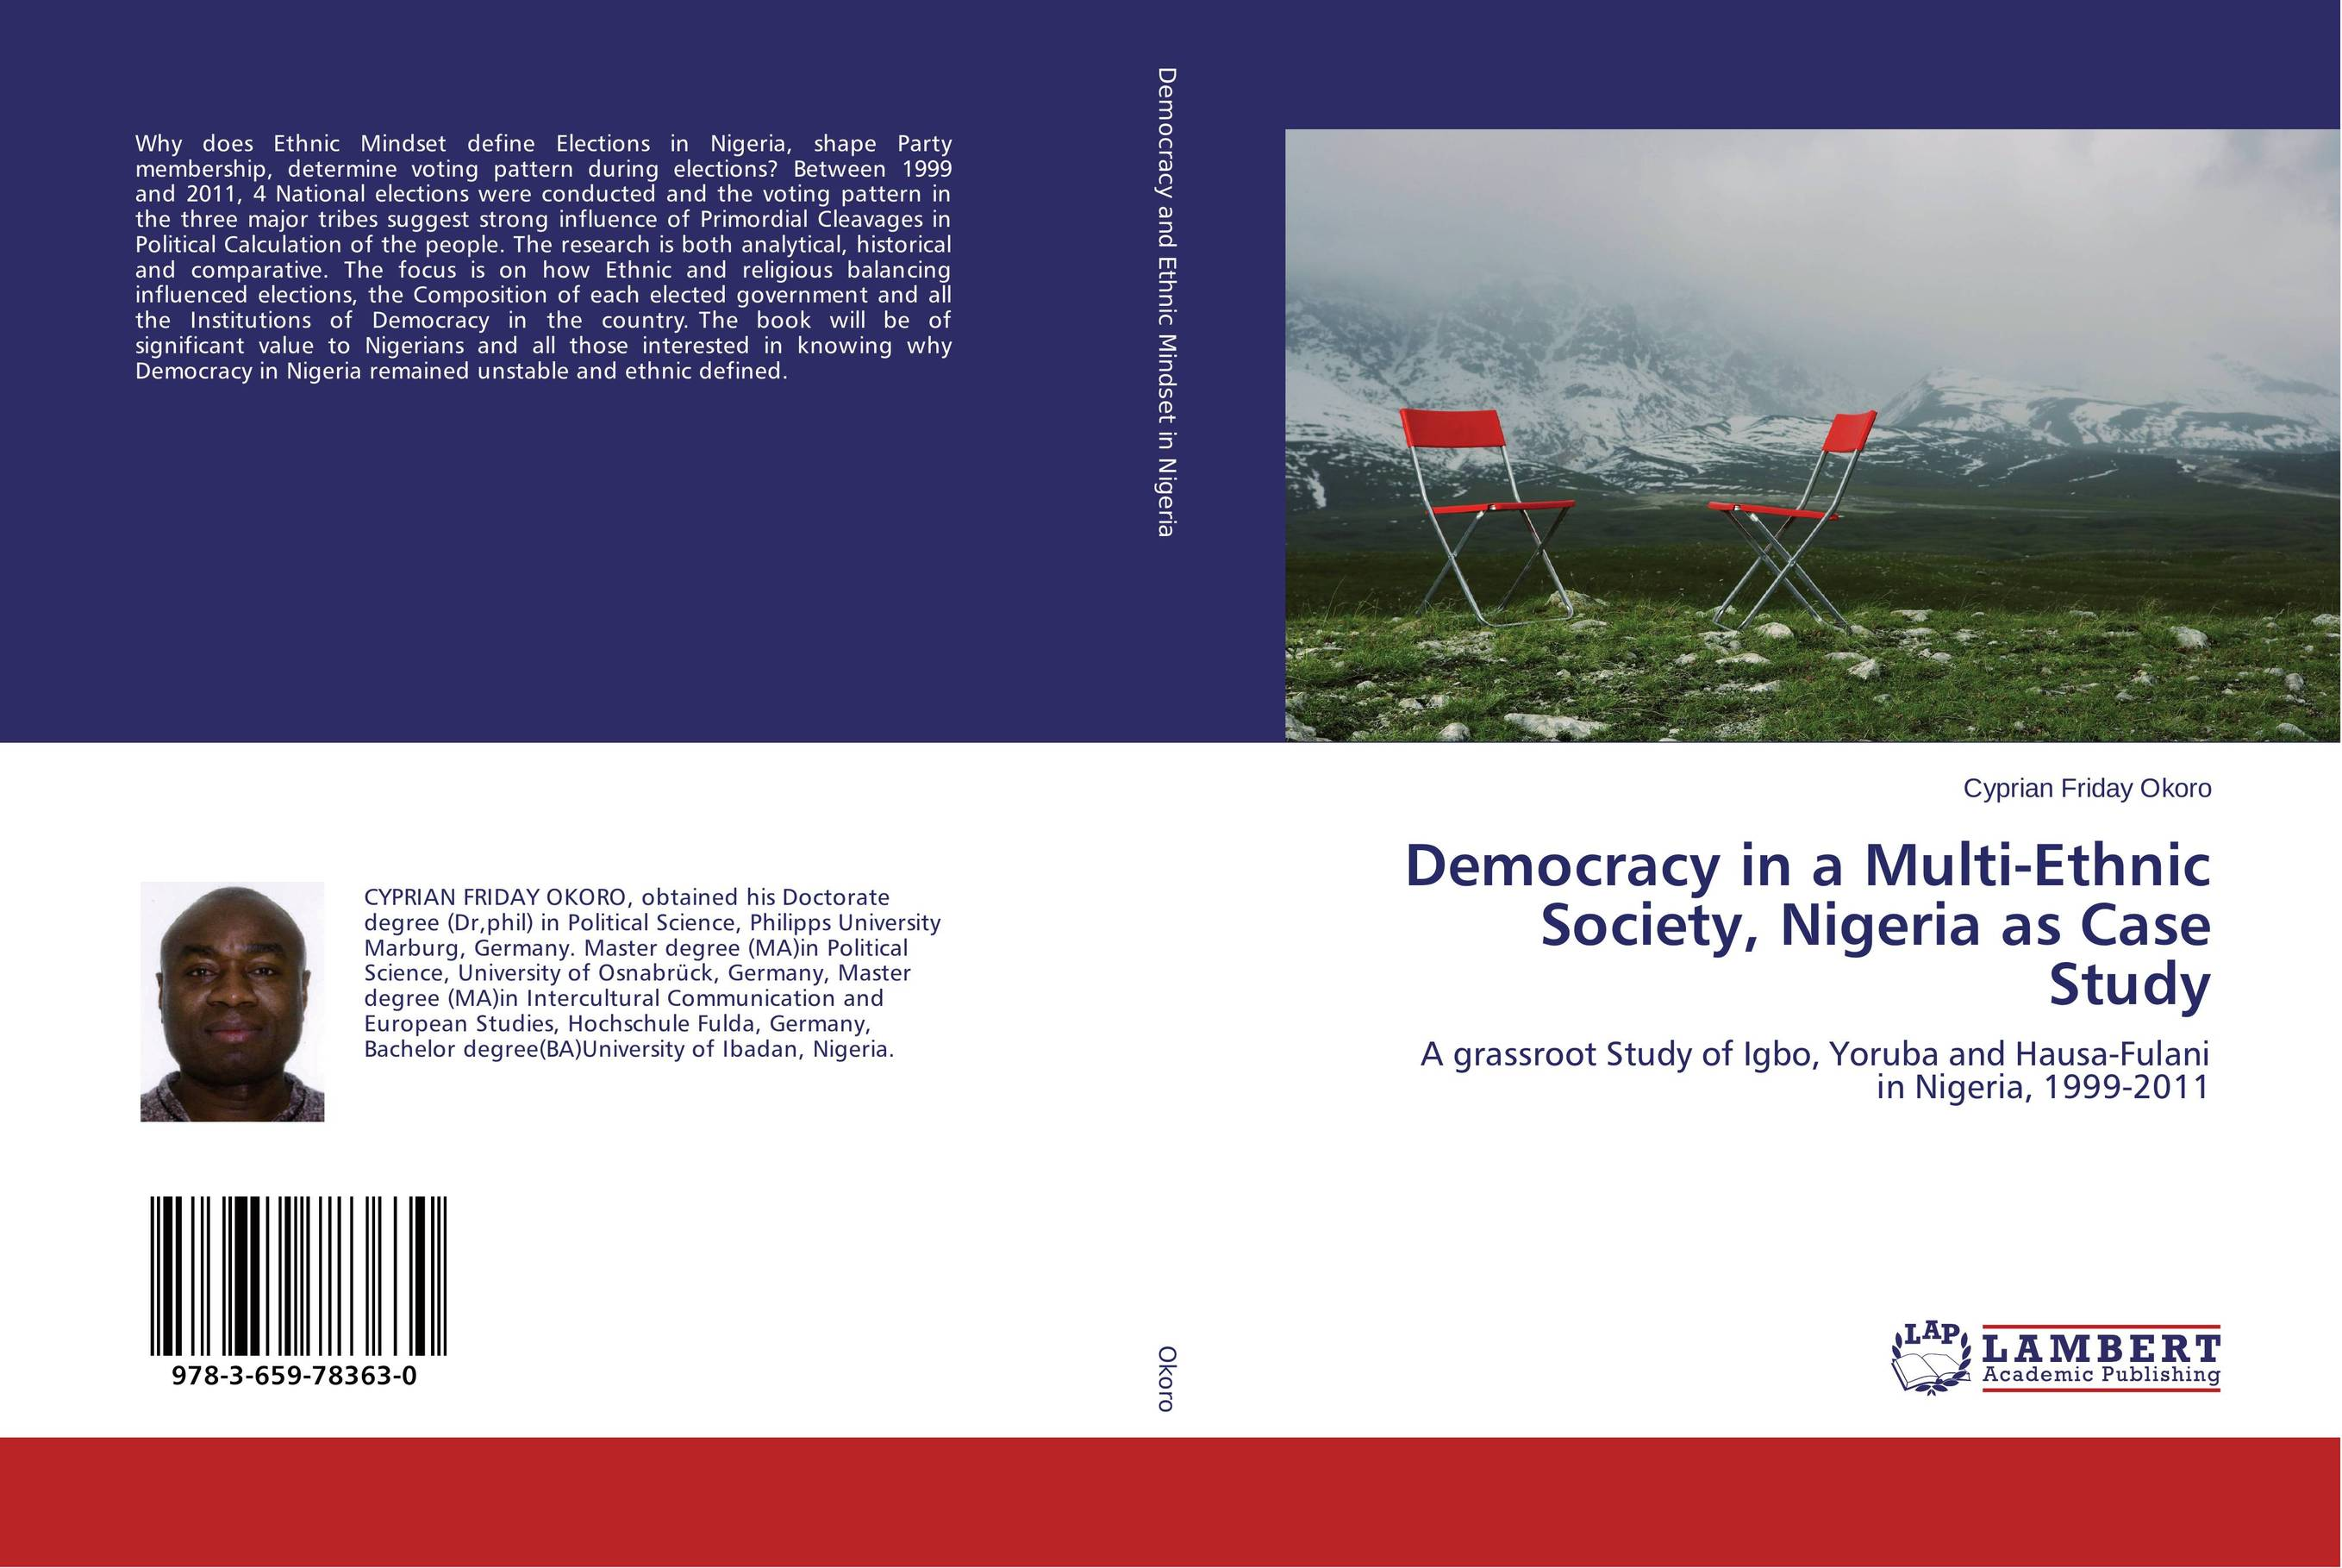 Democracy in a Multi-Ethnic Society, Nigeria as Case Study устройство зарядное орион pw 150